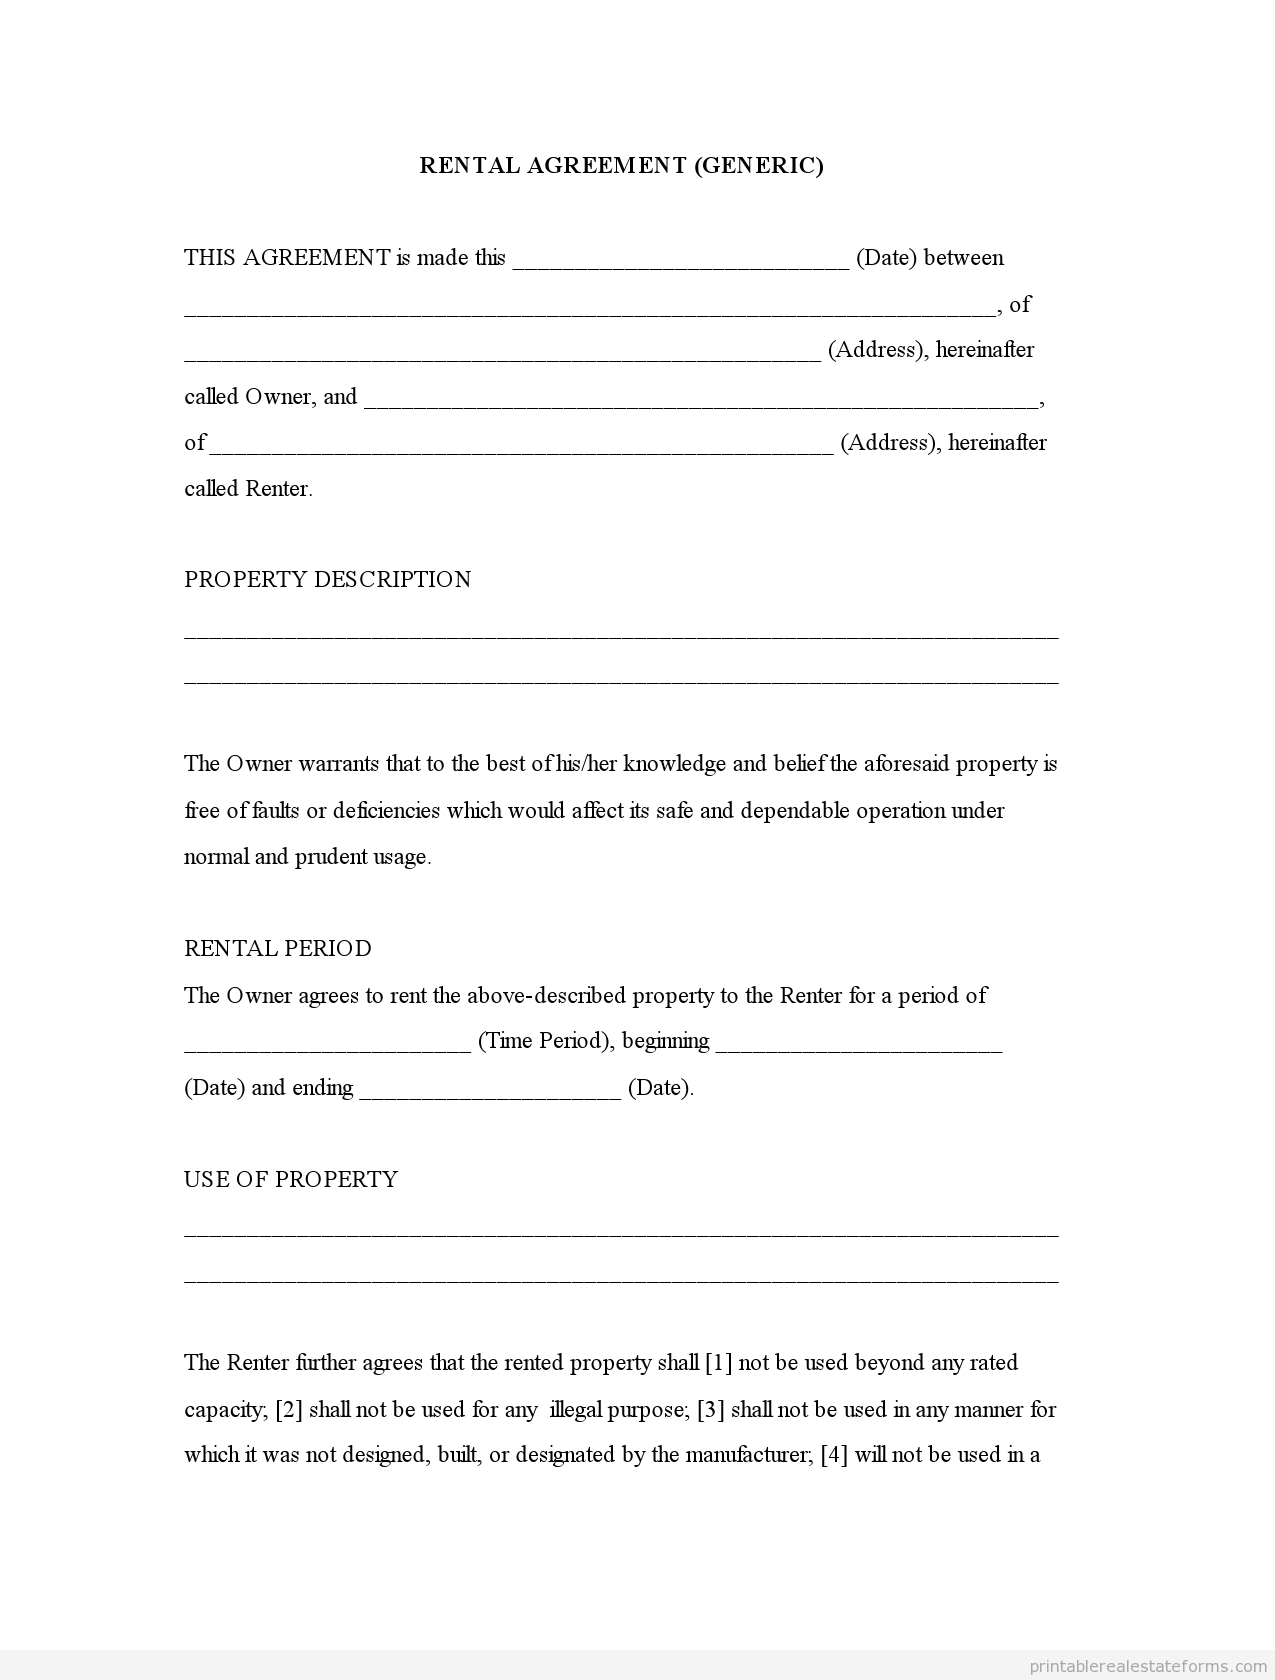 (GENERIC TEMPLATE) Rental Agreement Forms Free Printable  Free Property Lease Agreement